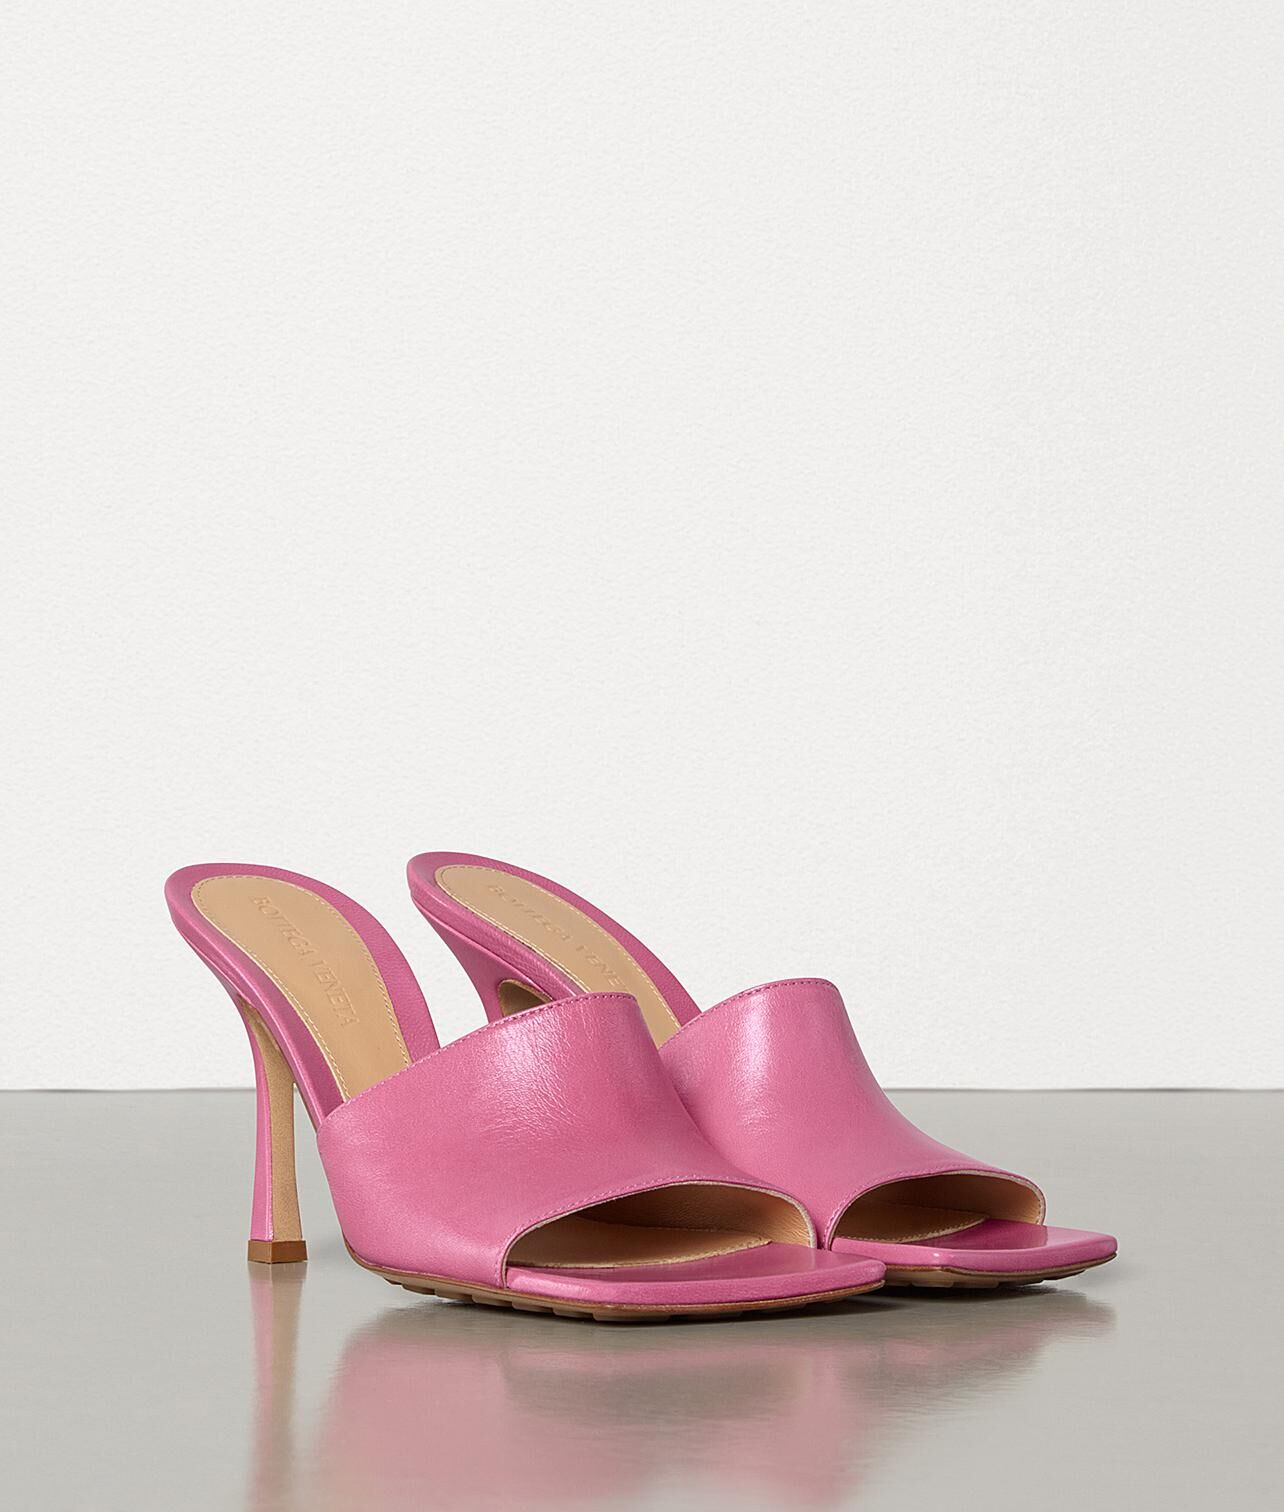 Bottega Veneta Shoes BV2048 Pink